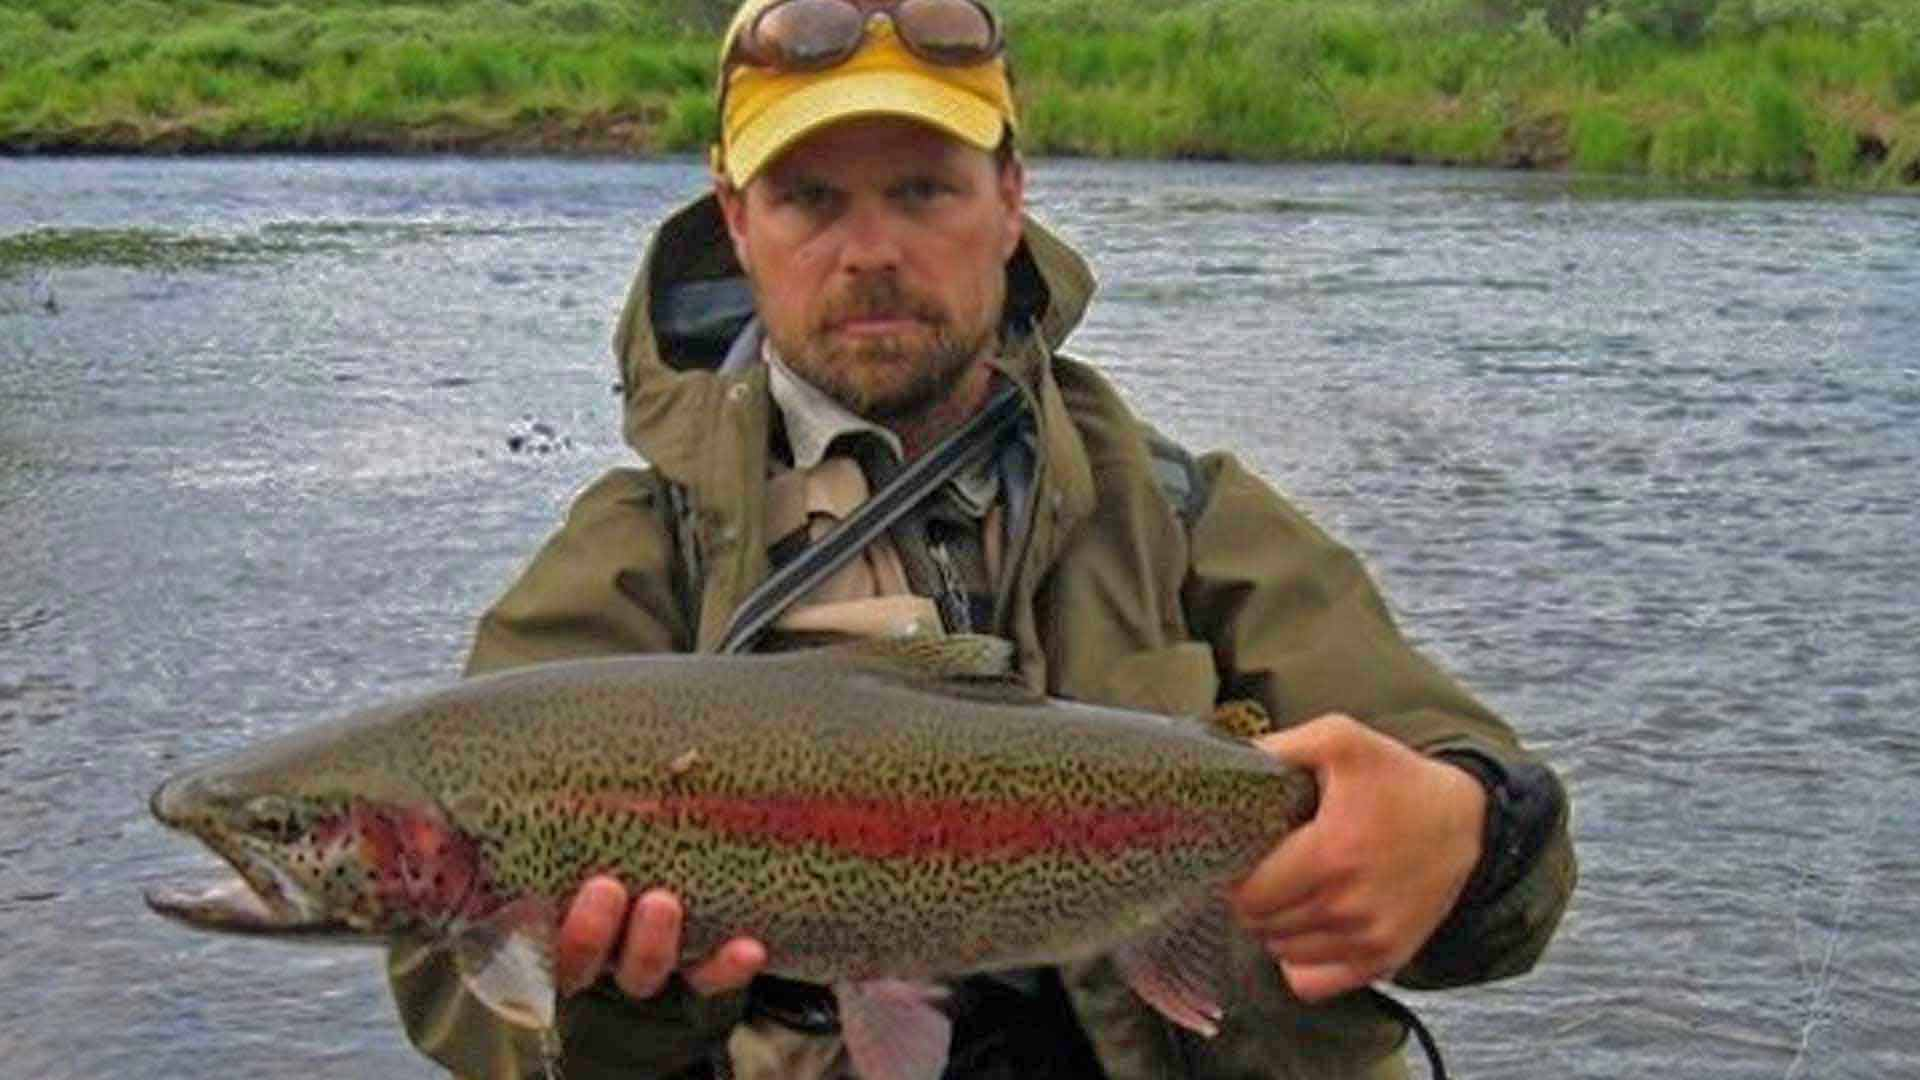 Alaska rainbow fishing